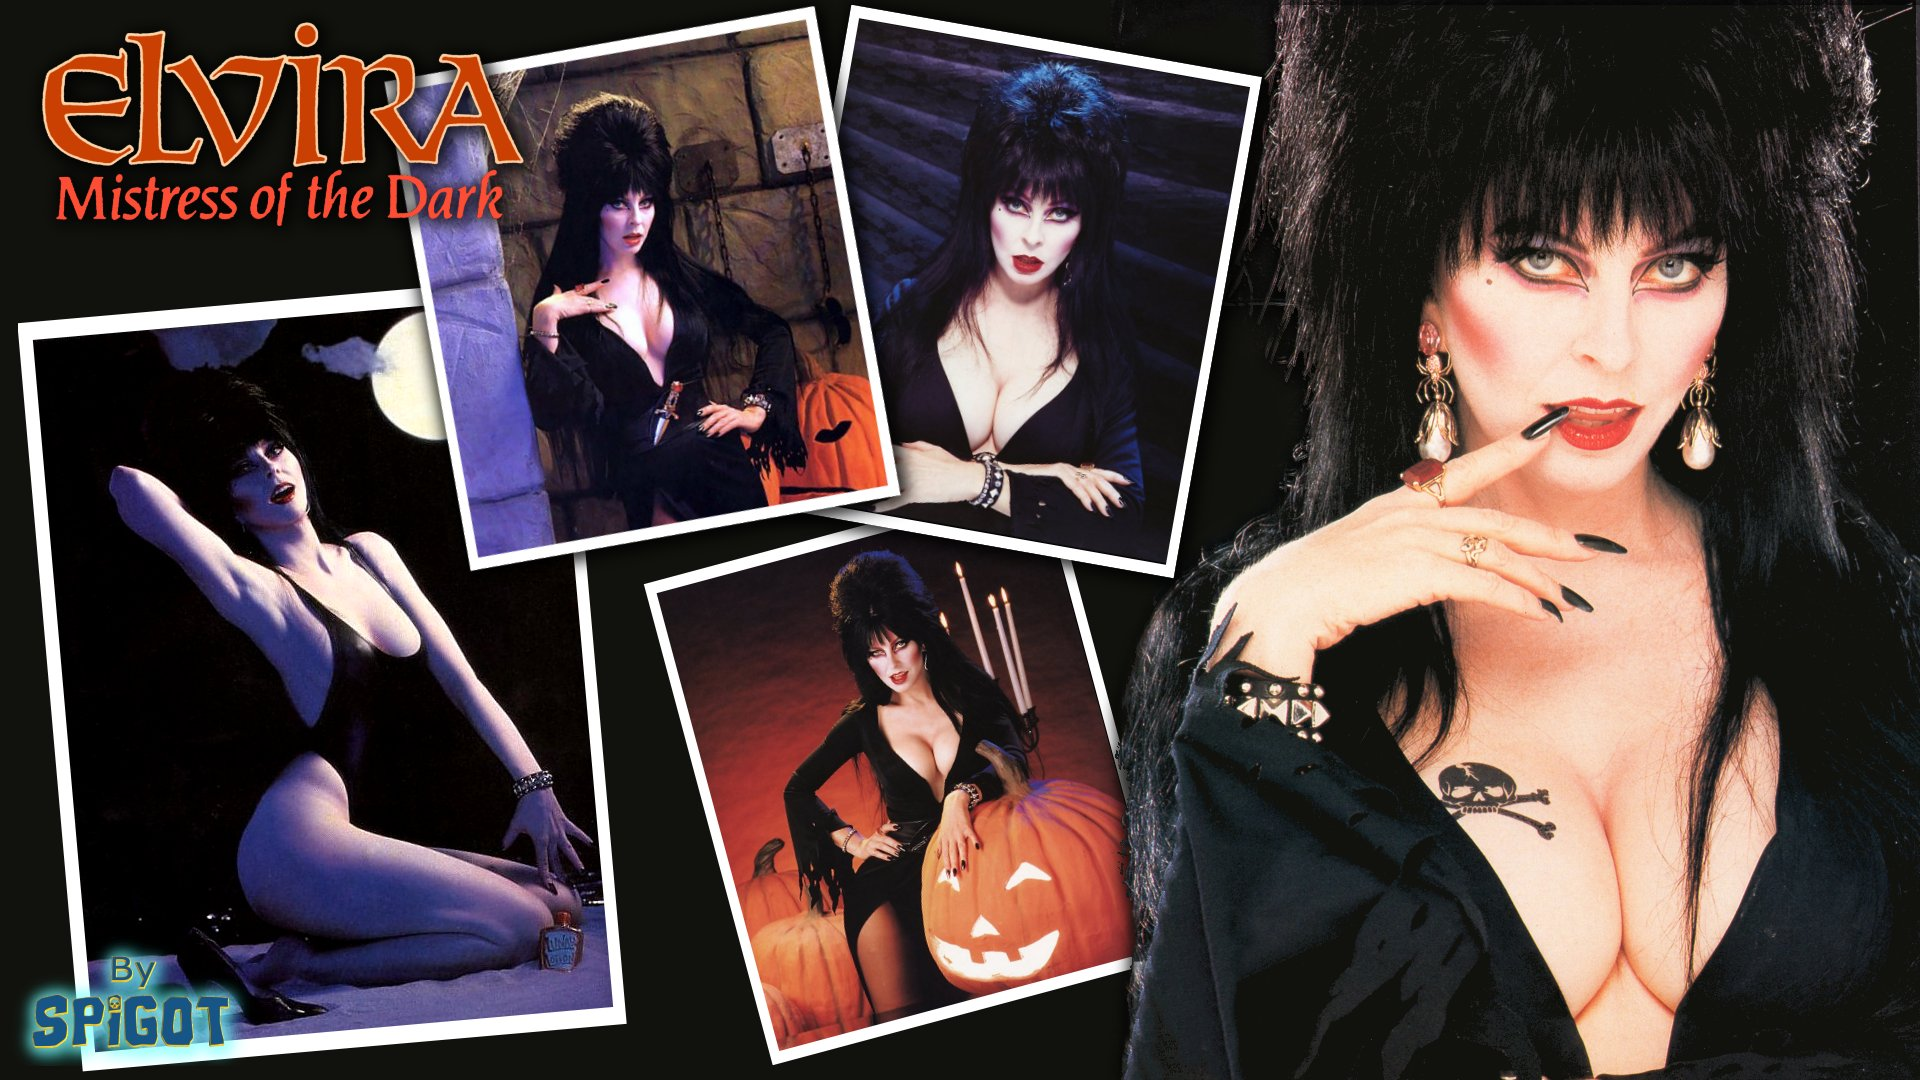 Dark black cassandra peterson elvira elvira mistress of the dark 1920x1080